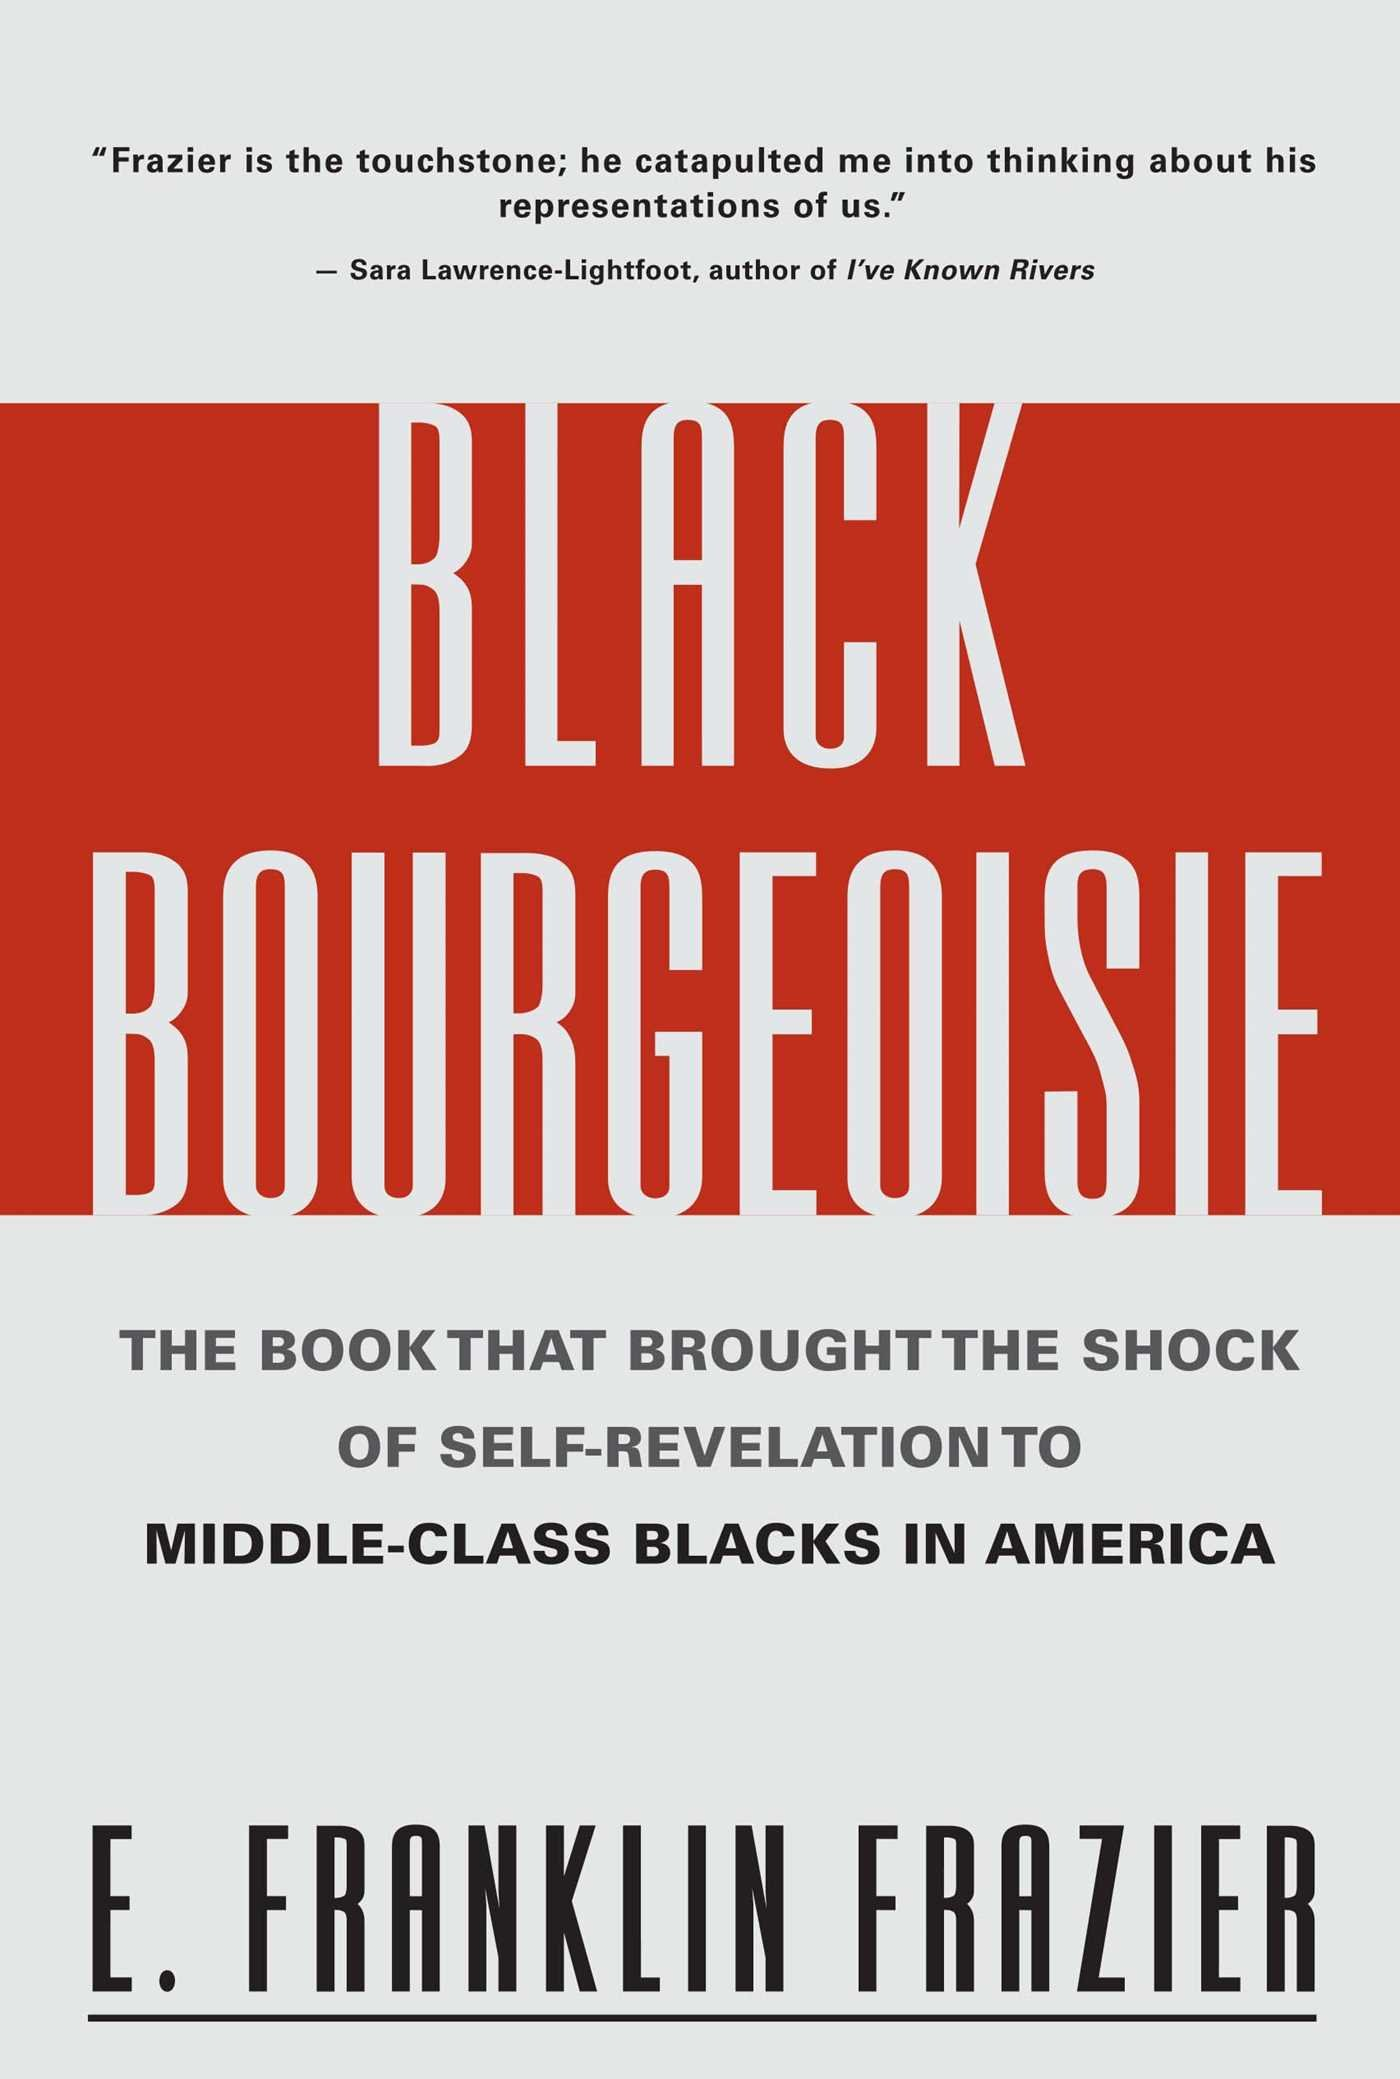 image about Total Wine Coupon Printable named Black Bourgeoisie: Franklin Frazier: 9780684832418: Textbooks